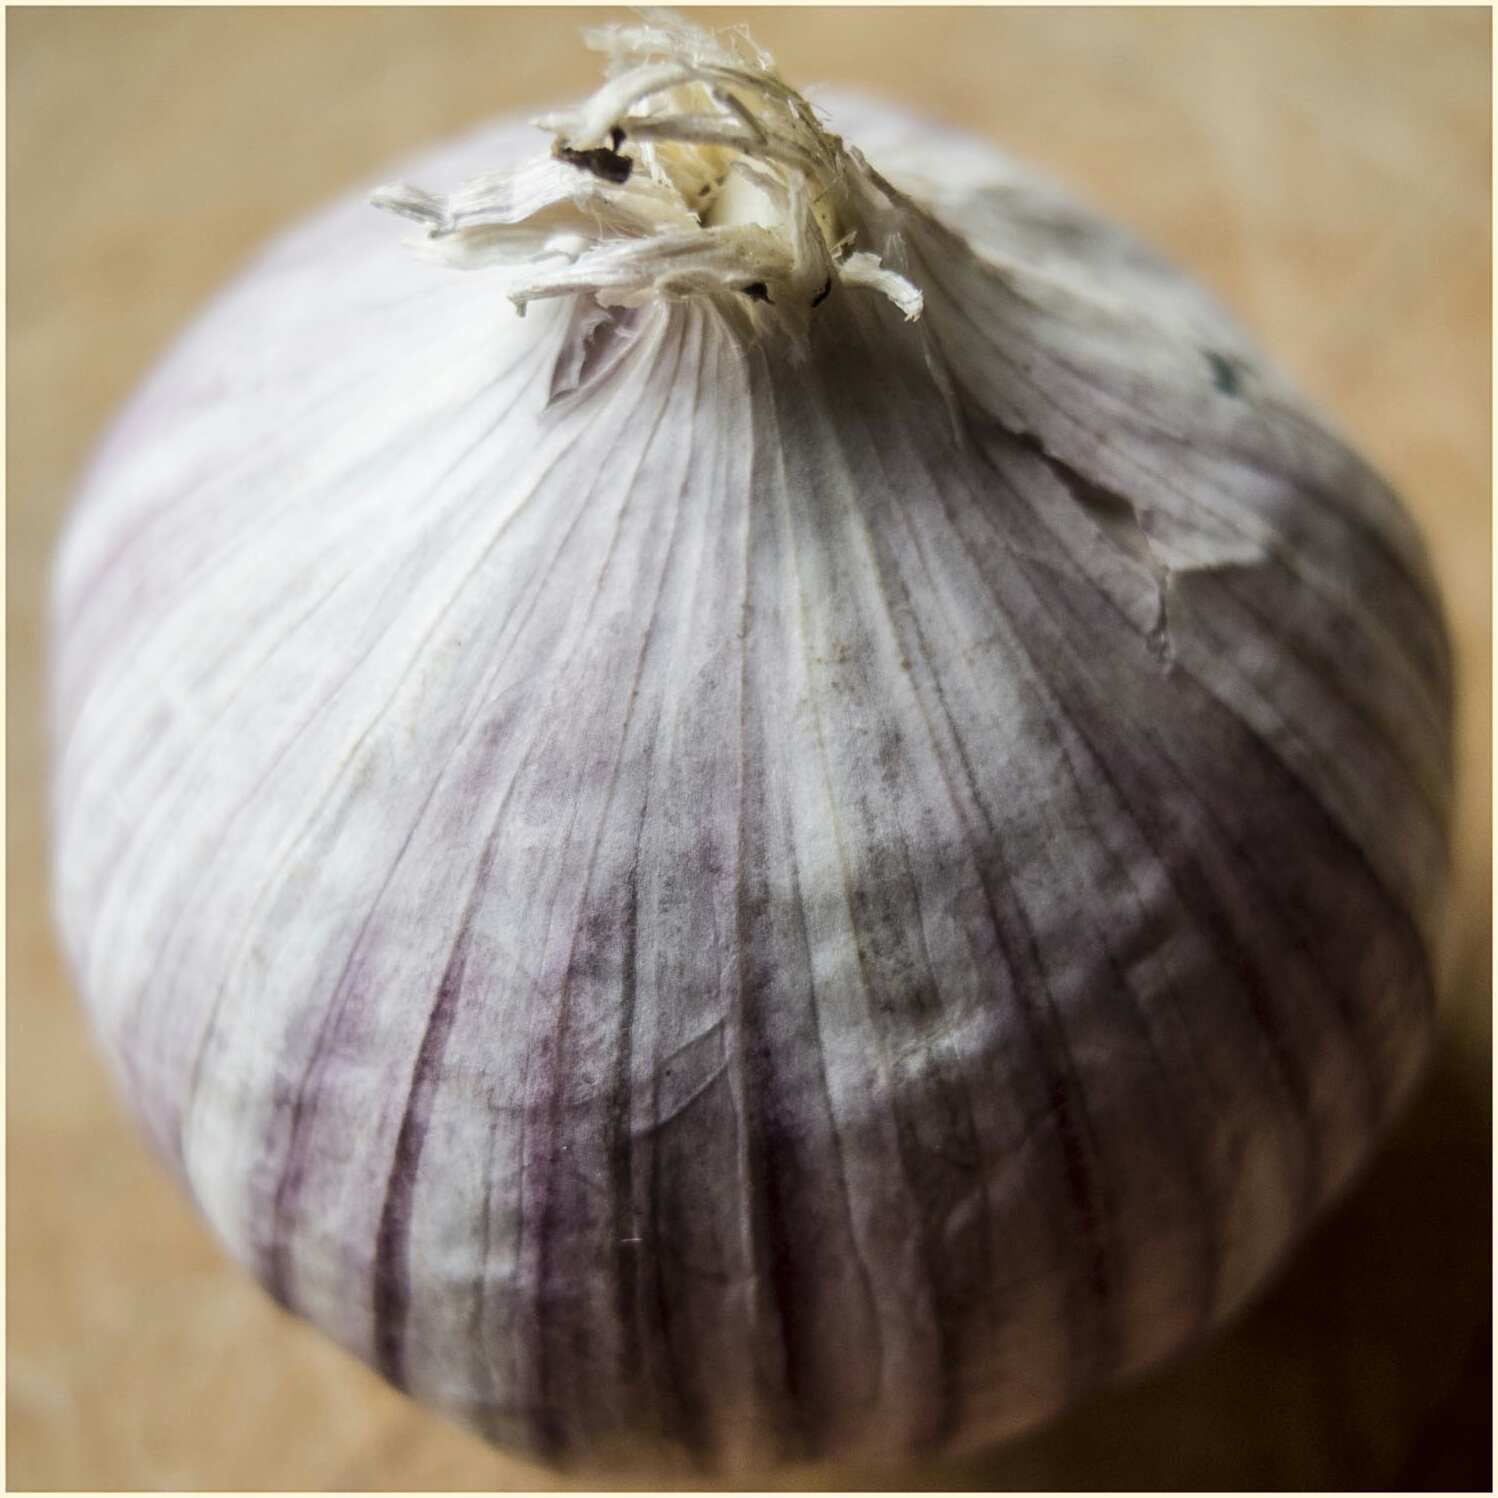 Chinese Garlic_1